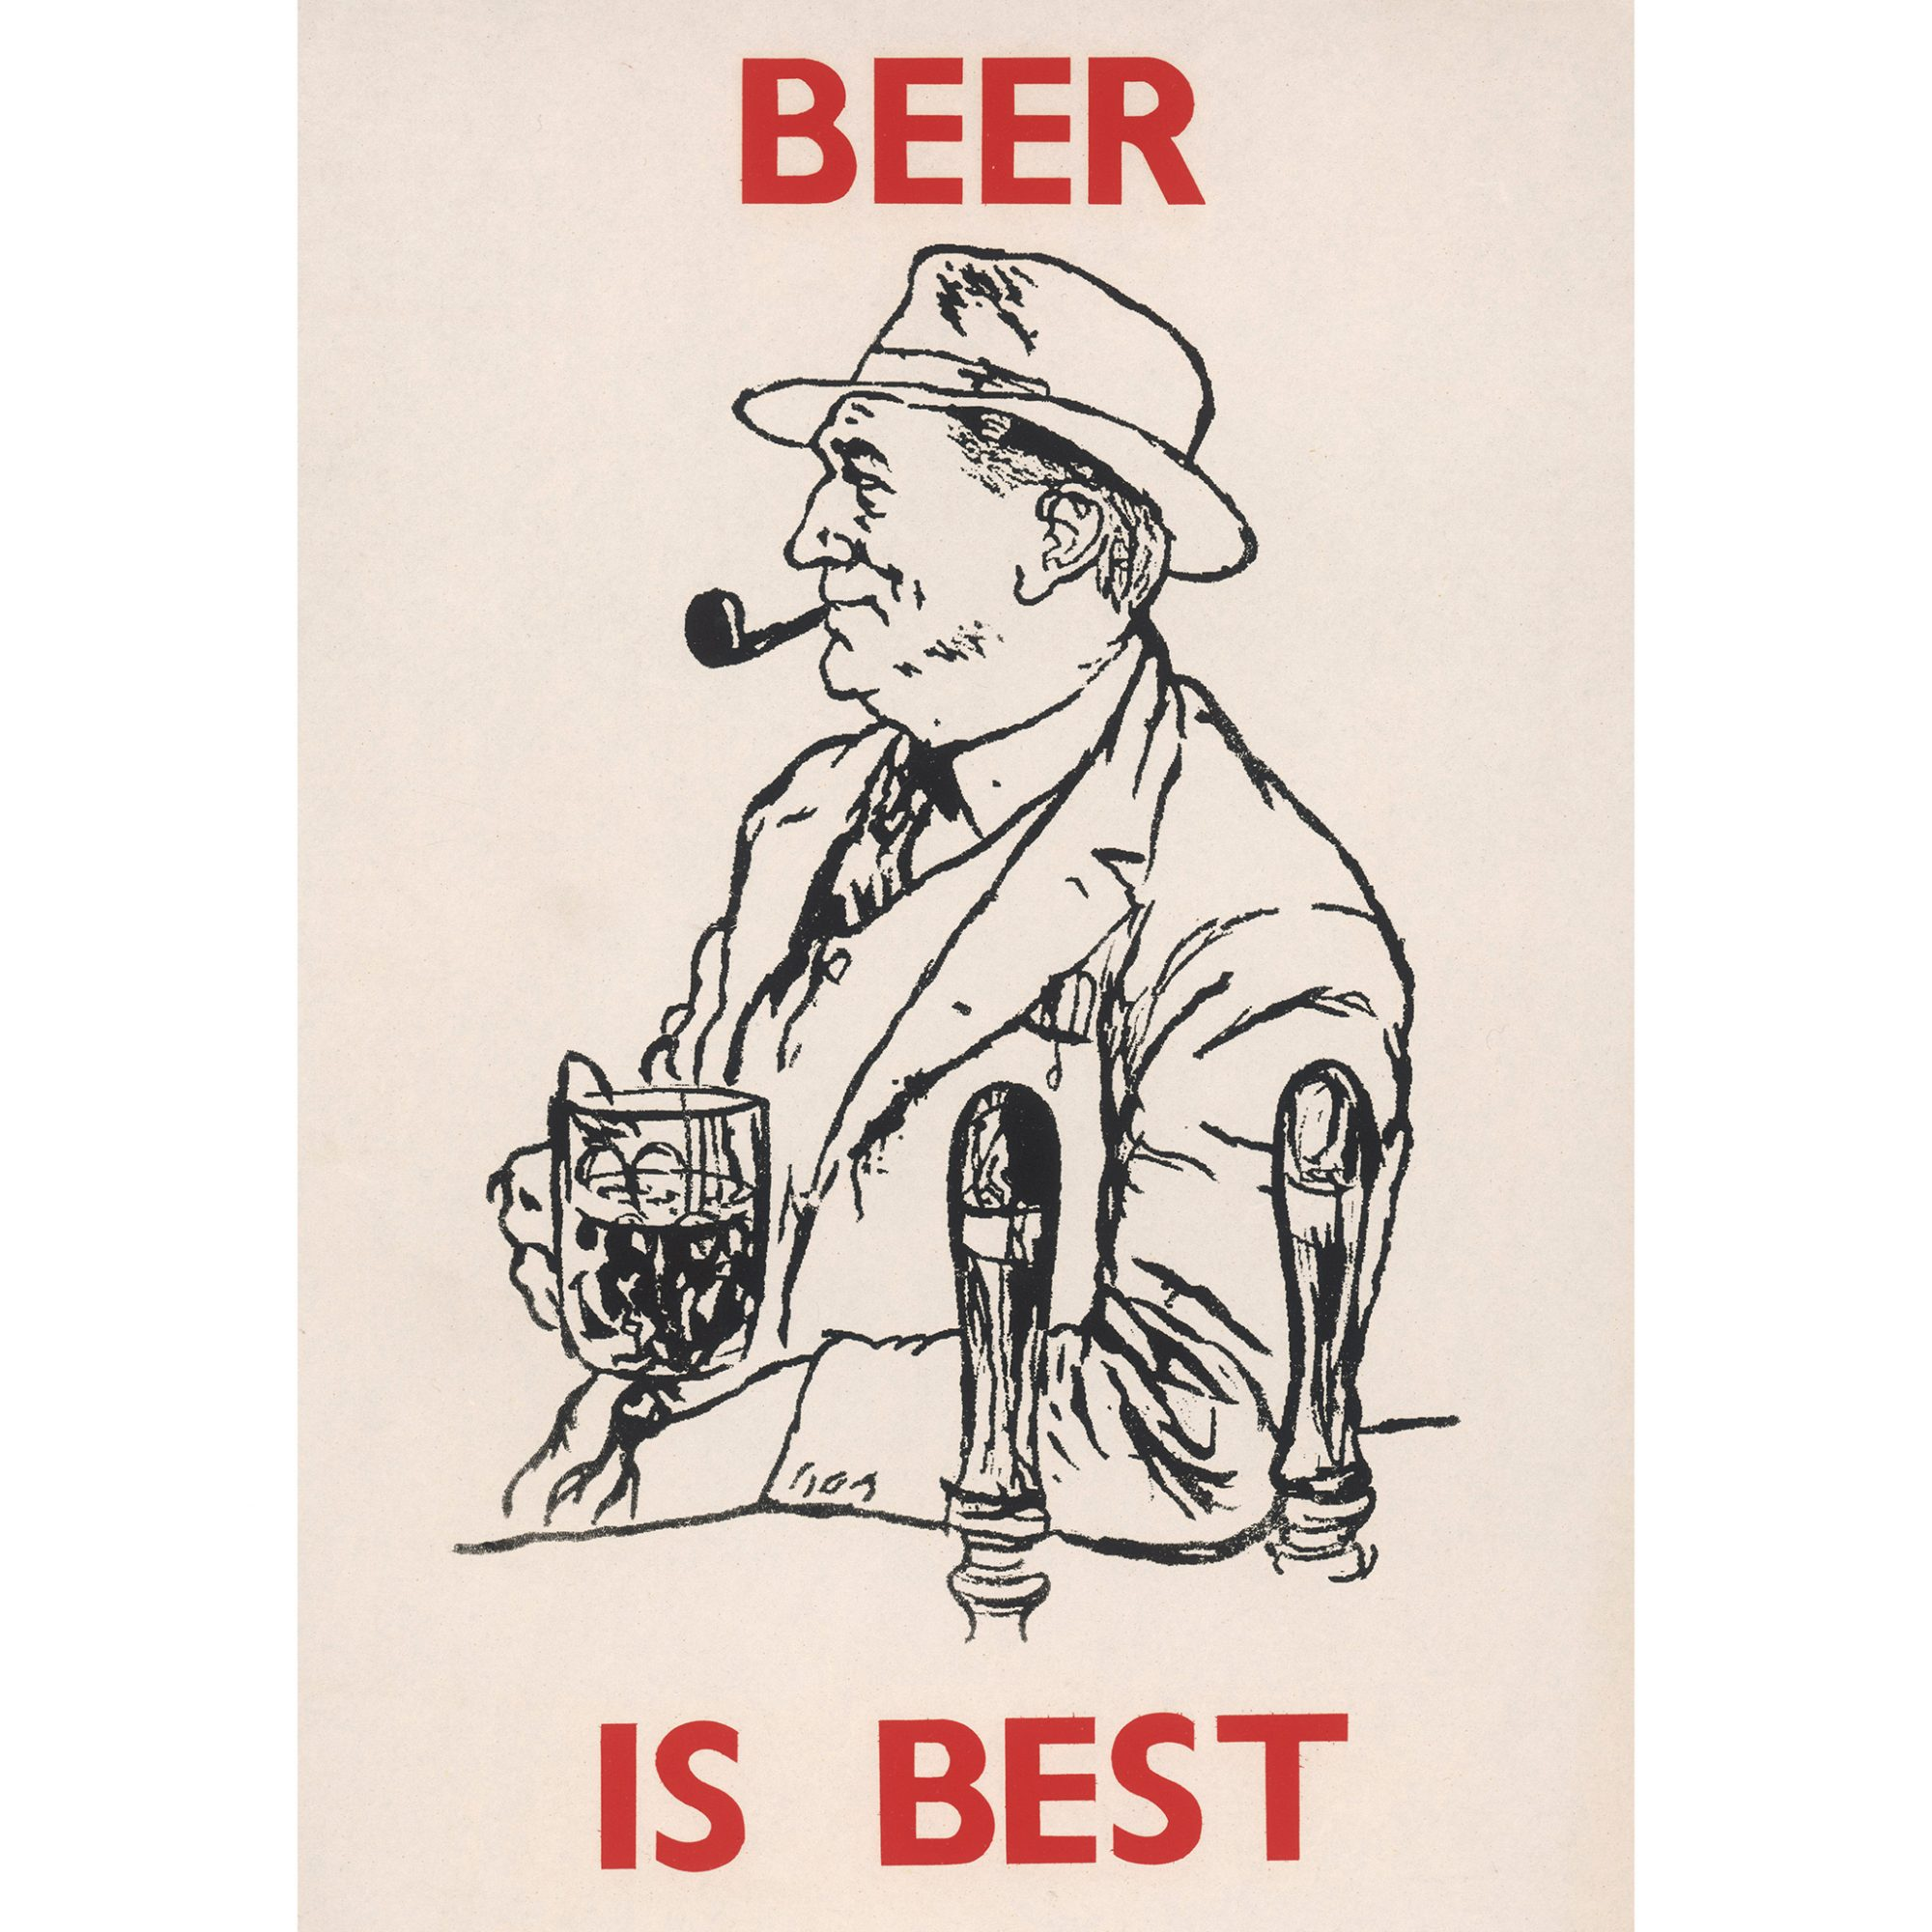 How to Tell if You Are a Beer Geek or a Beer Snob